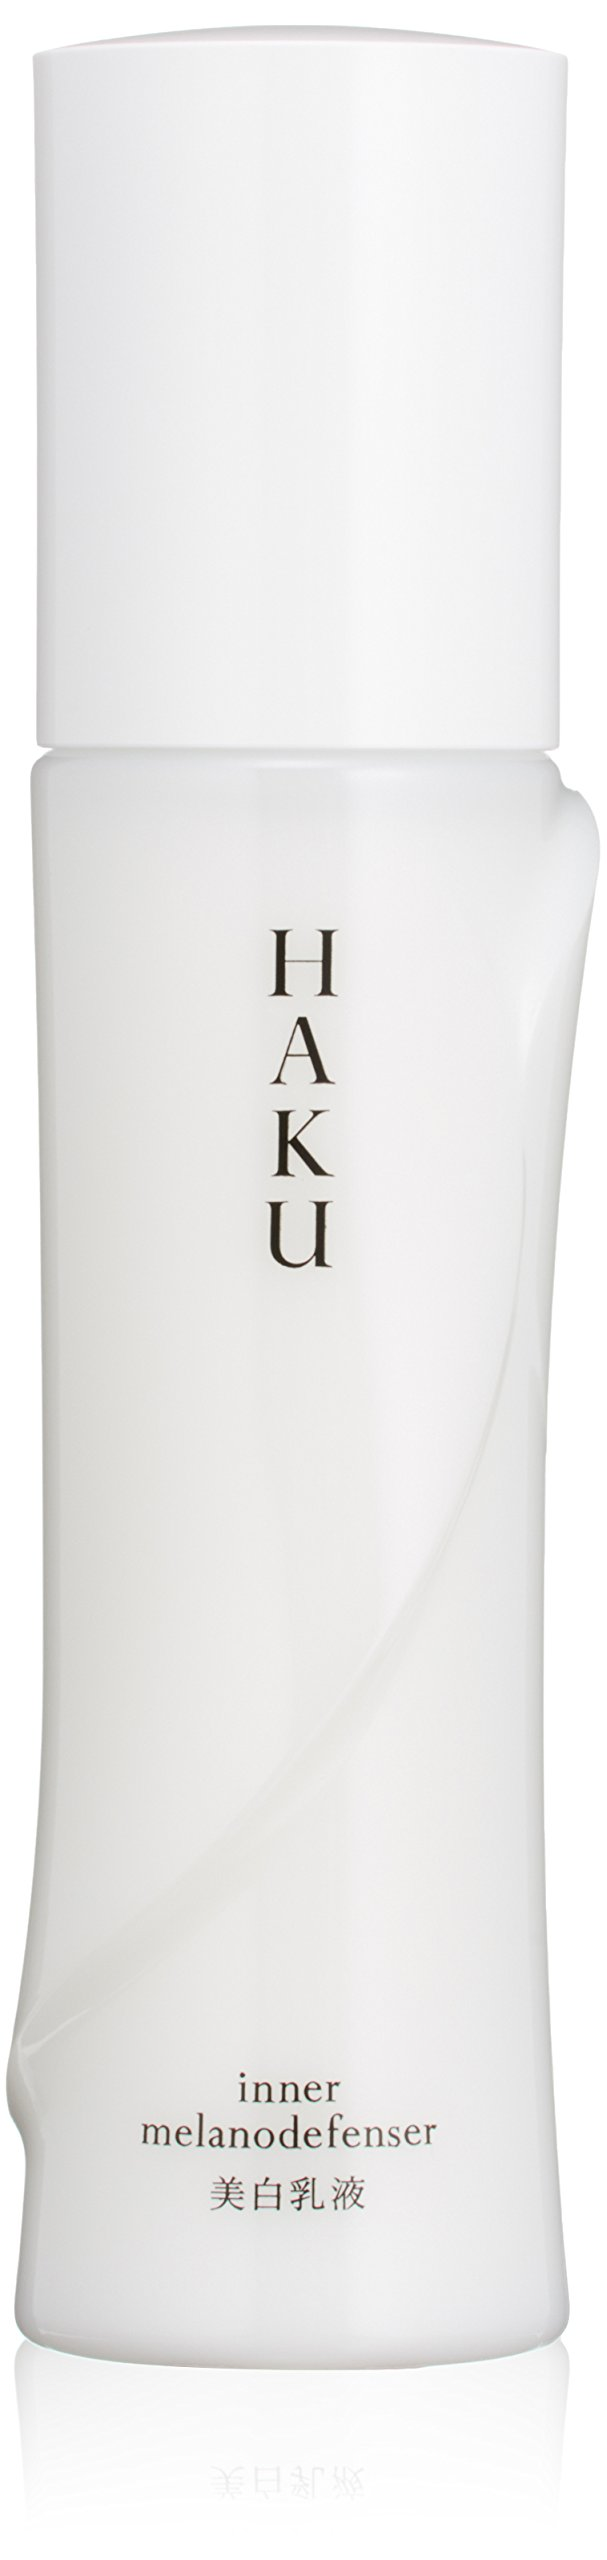 Shiseido HAKU Inner Melano Defencer 120ml